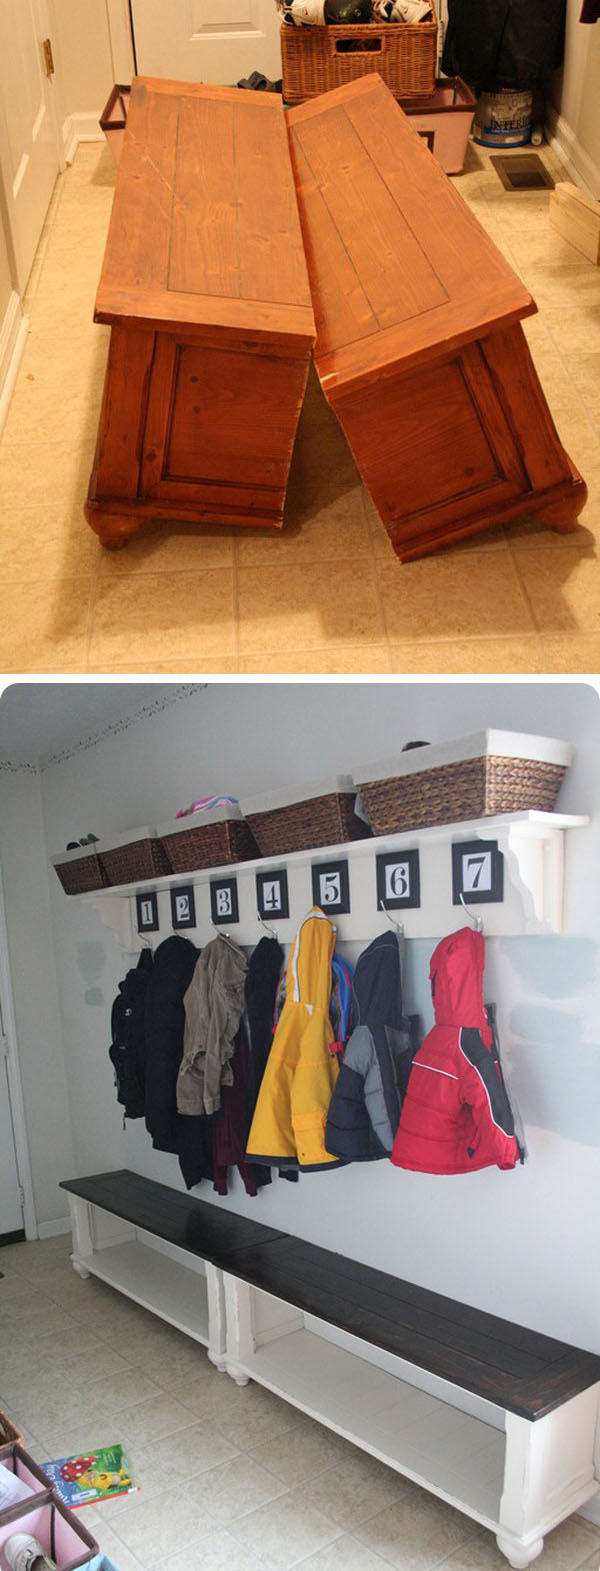 DIY Mudroom Bench from an Old Coffee Table.